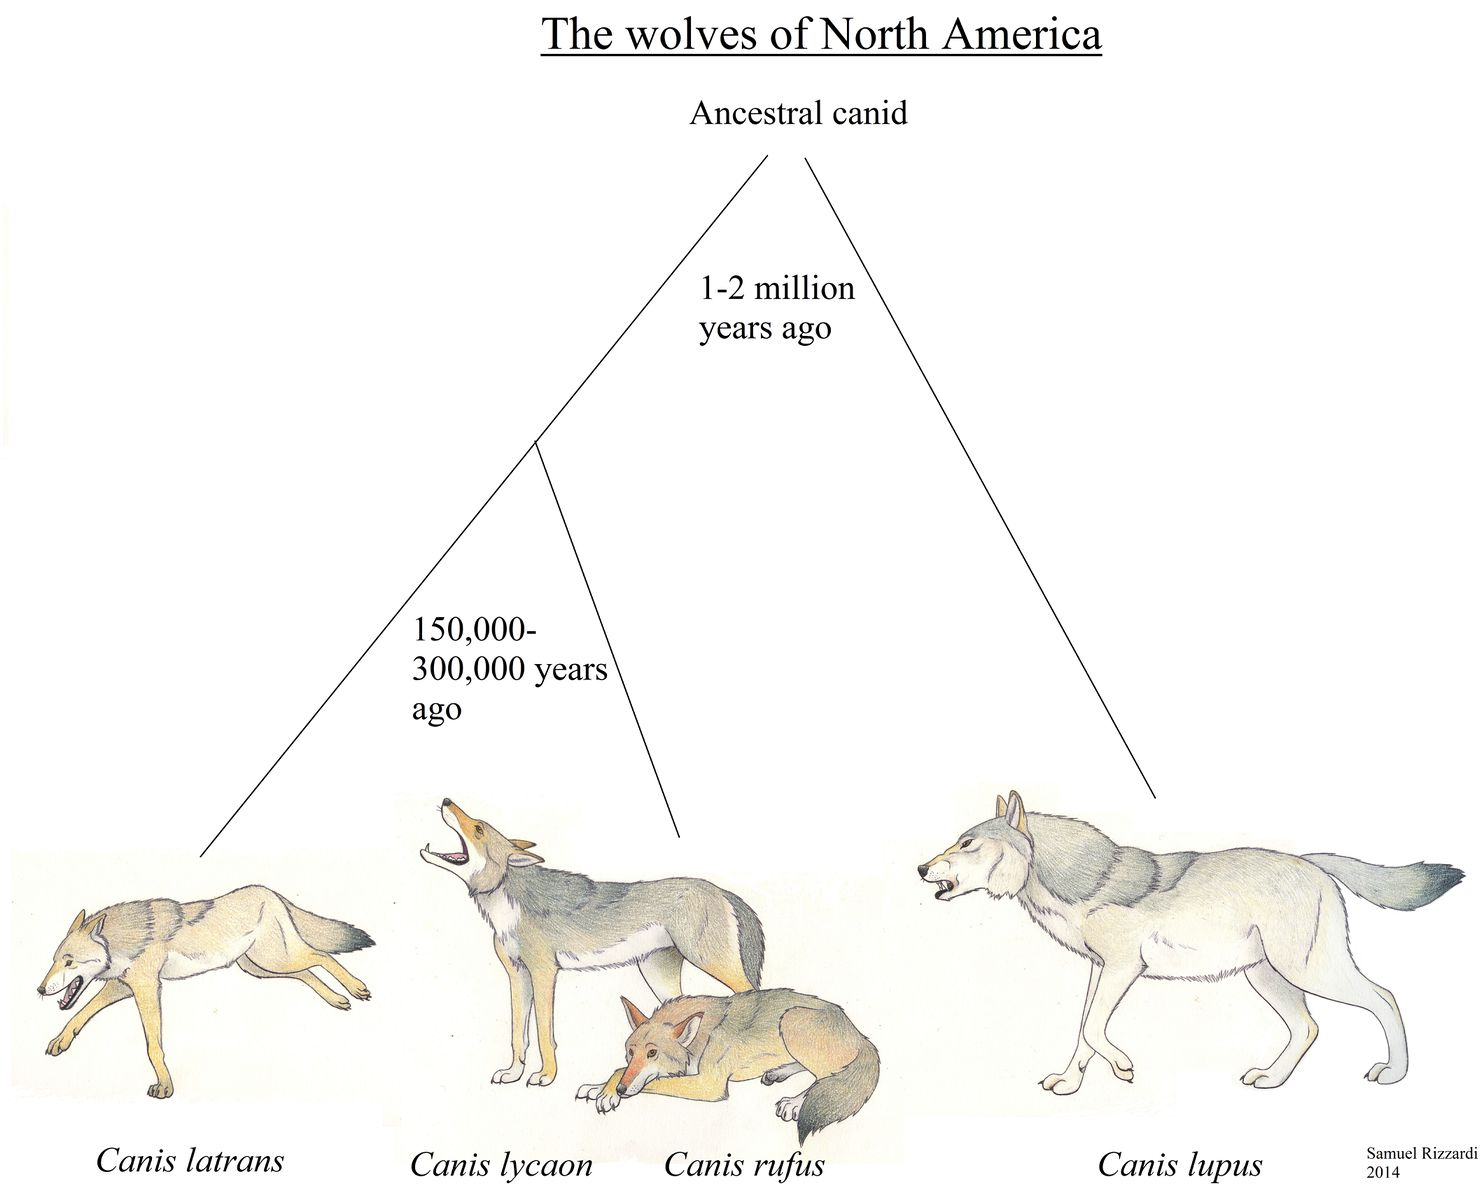 the importance of the wolf in the ecosystem of north america